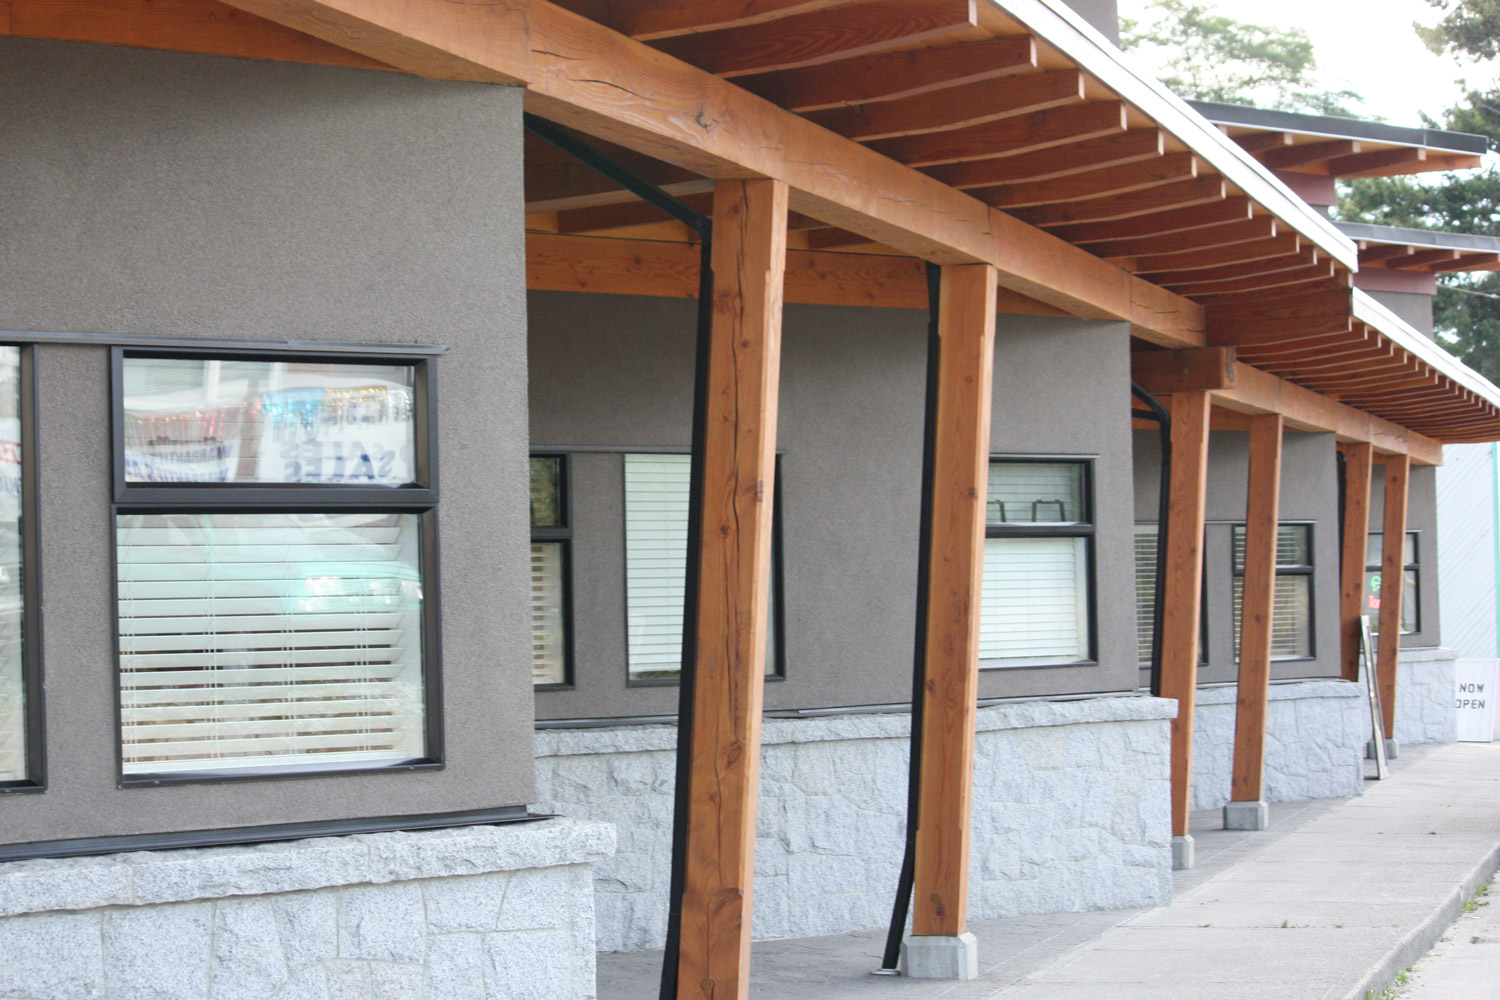 Commercial Storefront Modern Windows Amp Building Products British